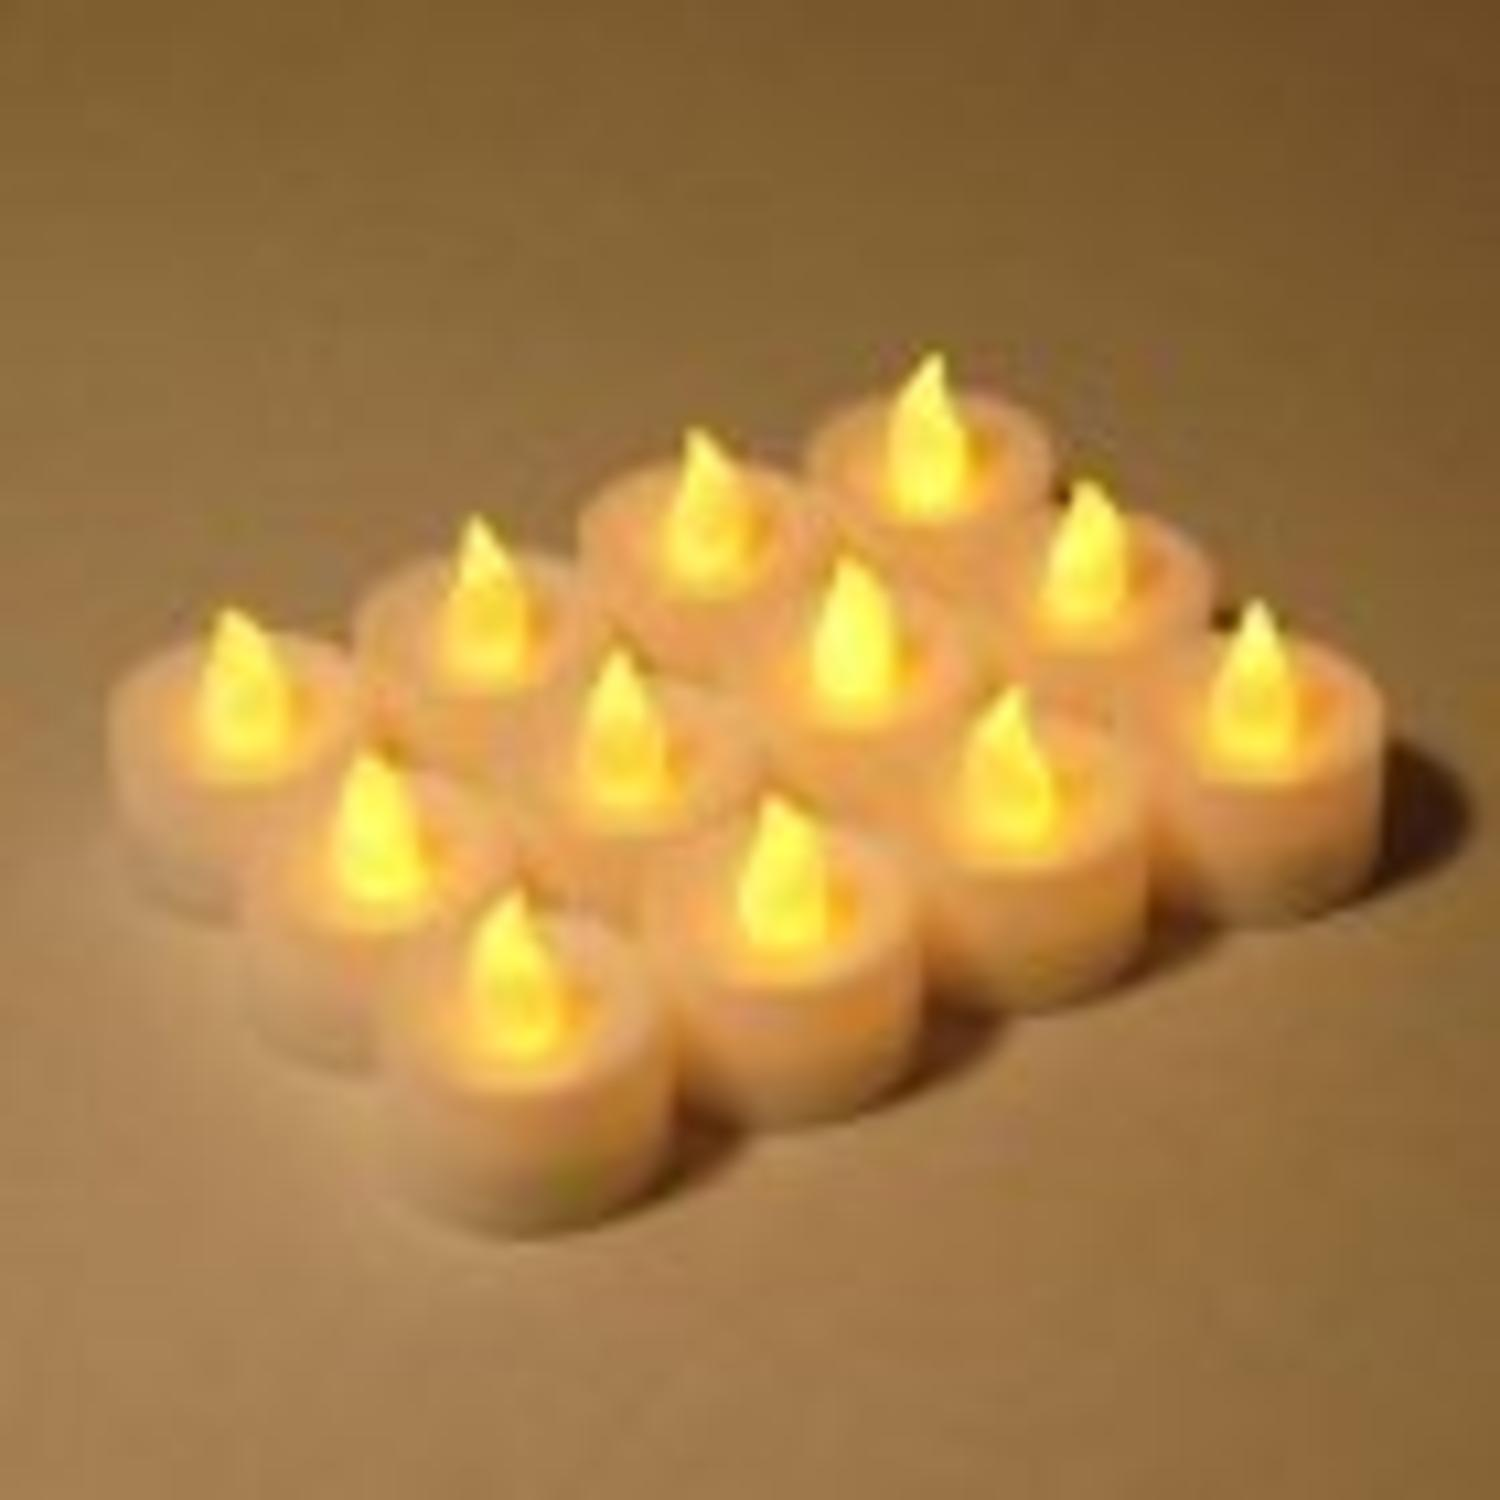 12 Battery Operated LED Flickering White Christmas Tea Light Candles